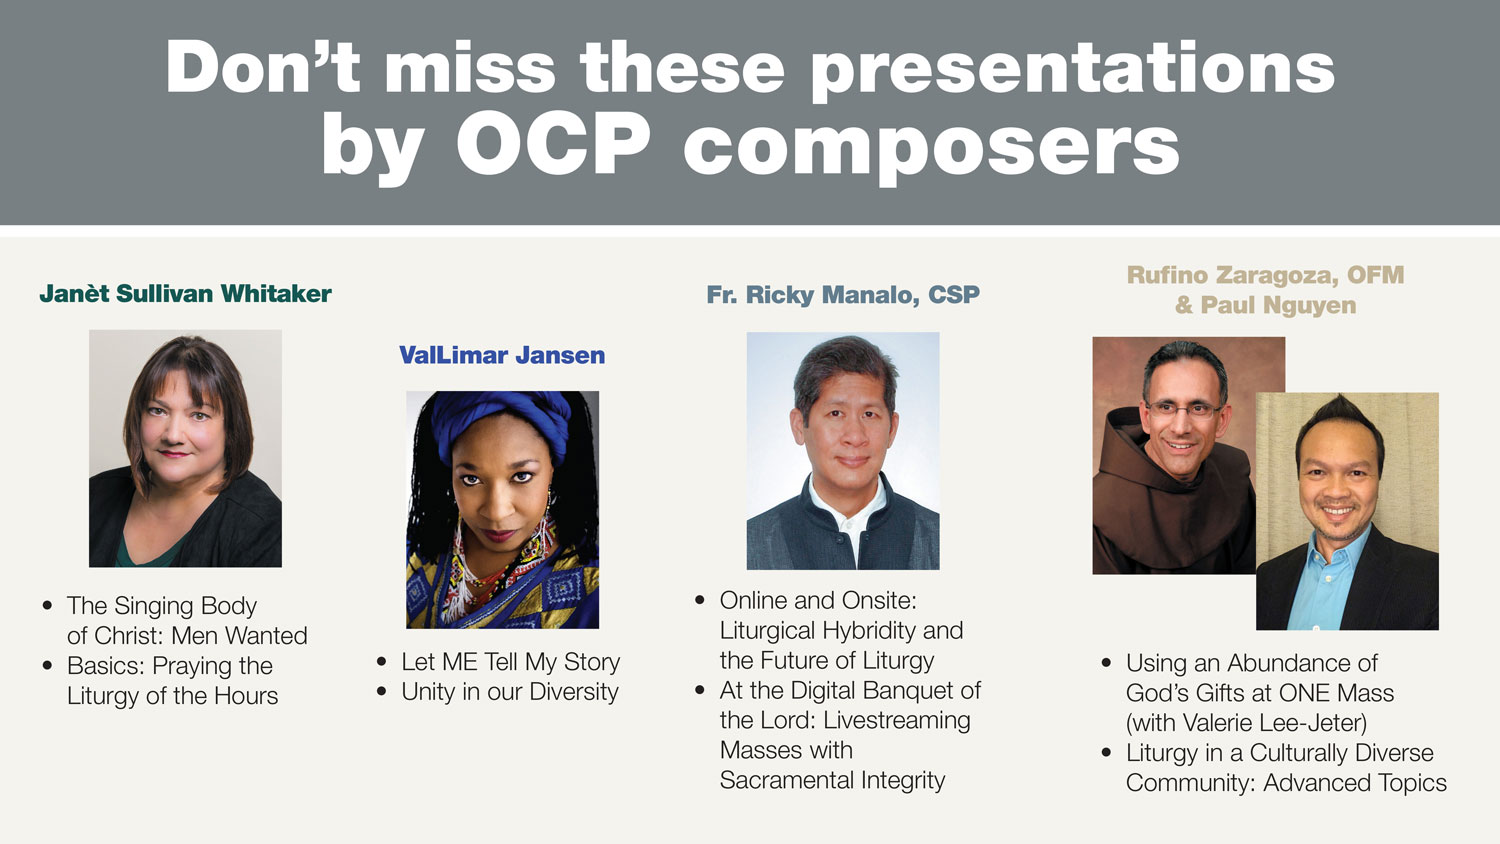 Don't miss these MEGA session presentations by OCP composers